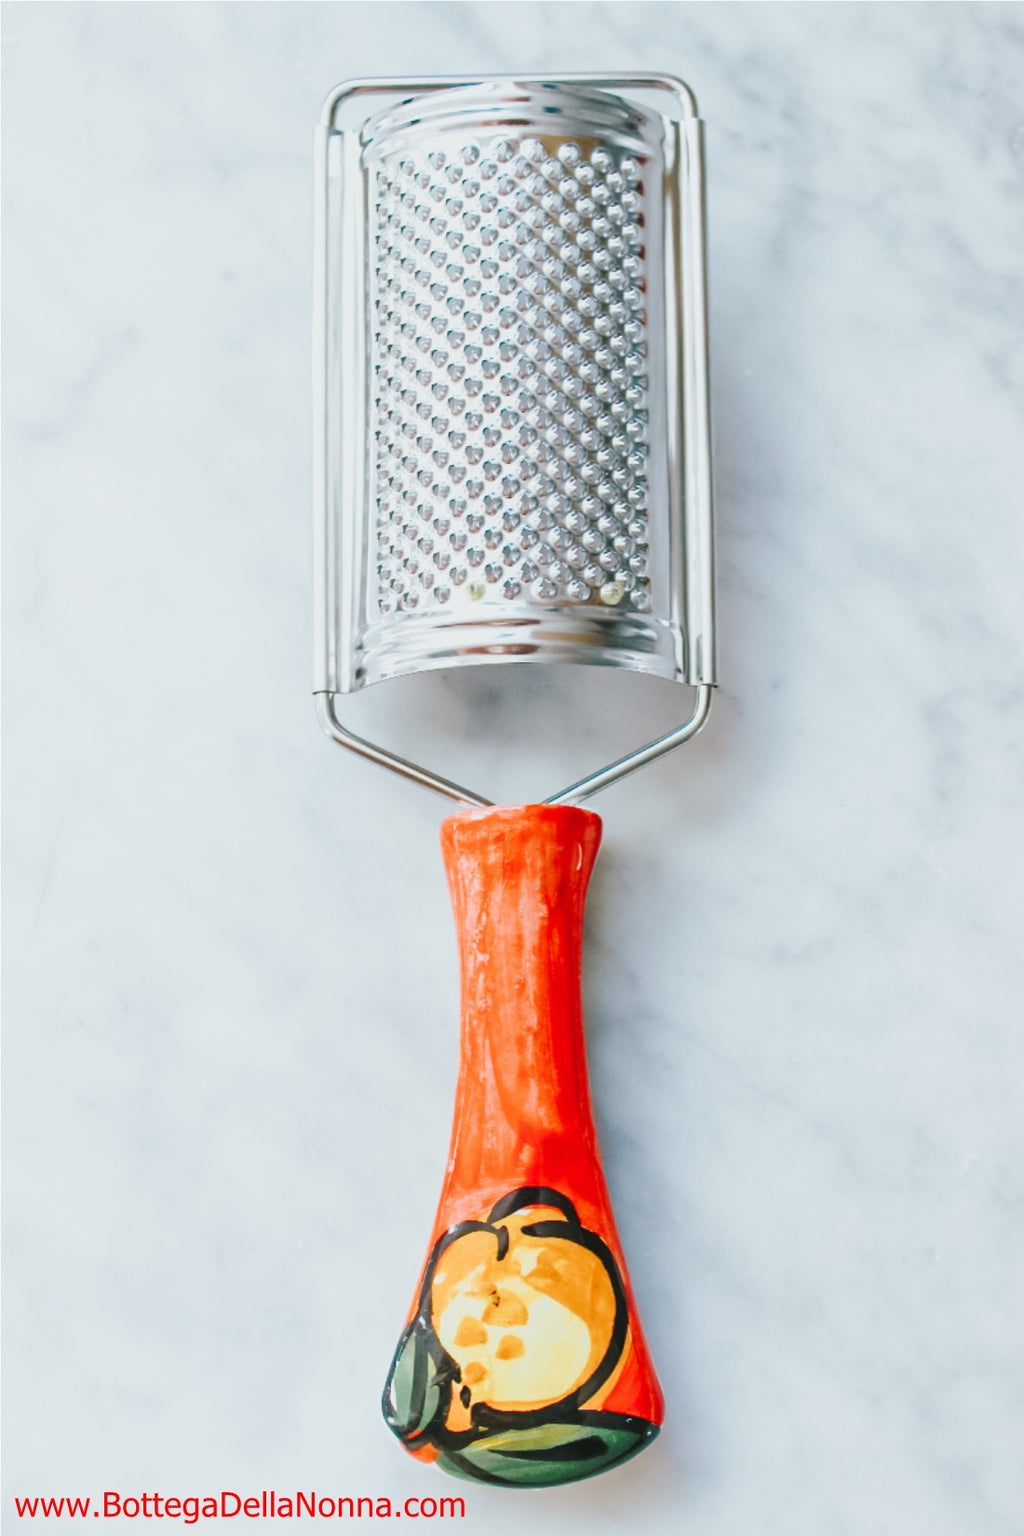 The Positano Cheese Grater